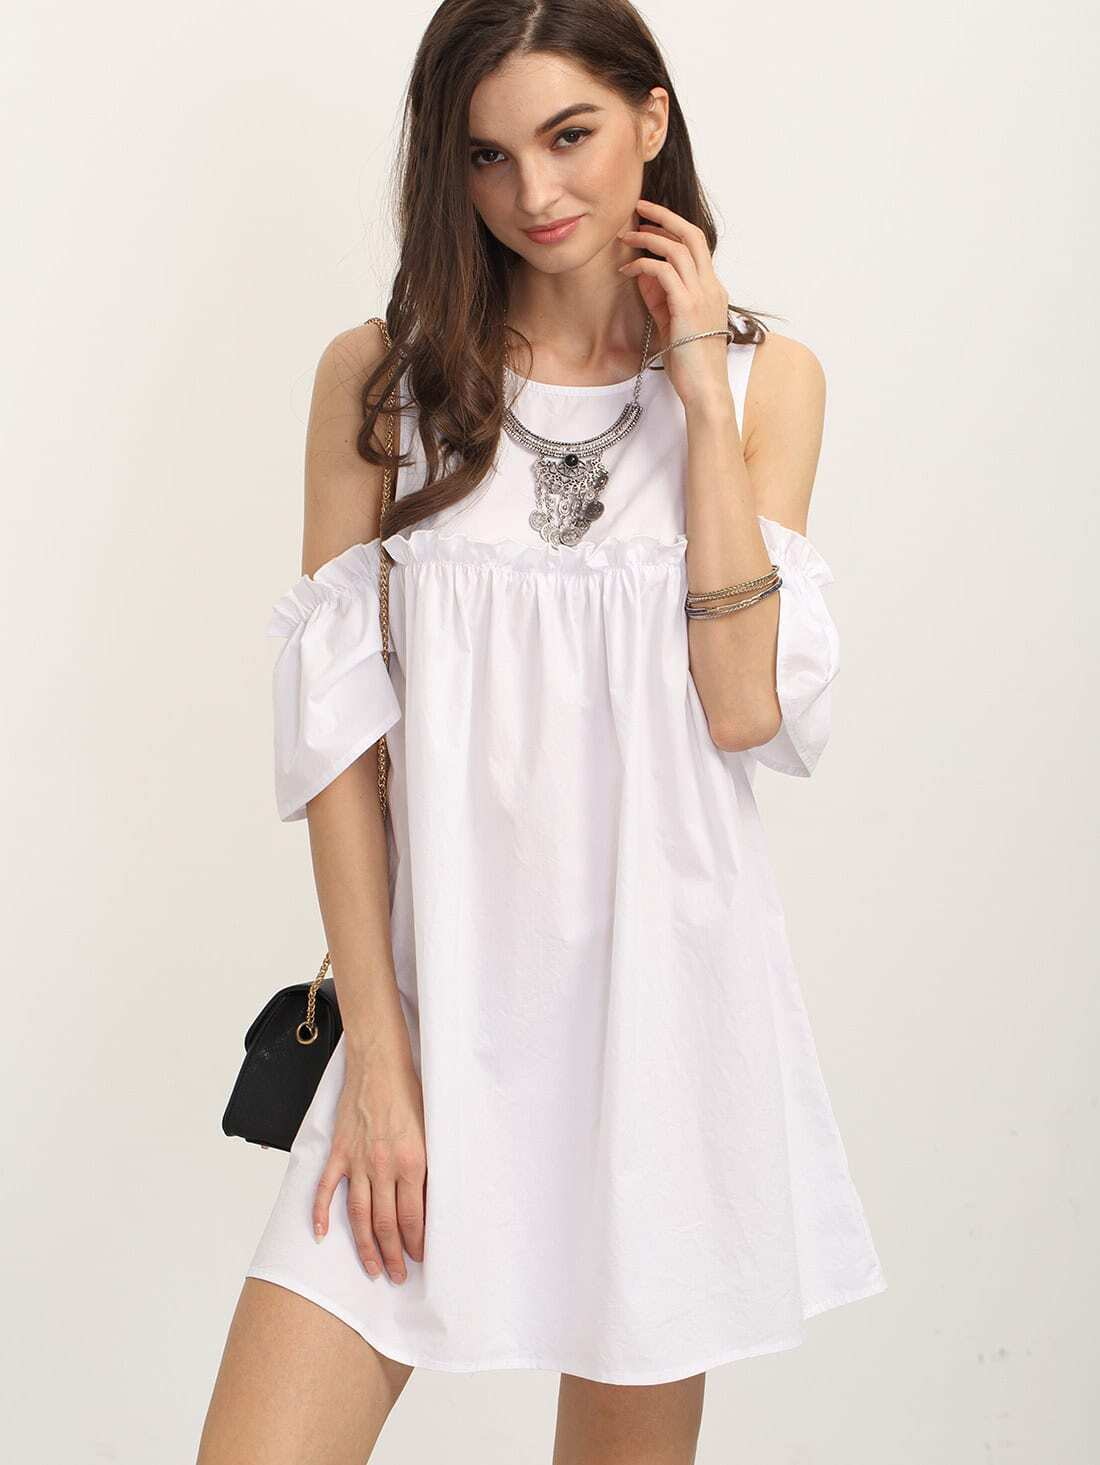 Frill Open Shoulder Dress dress160530731